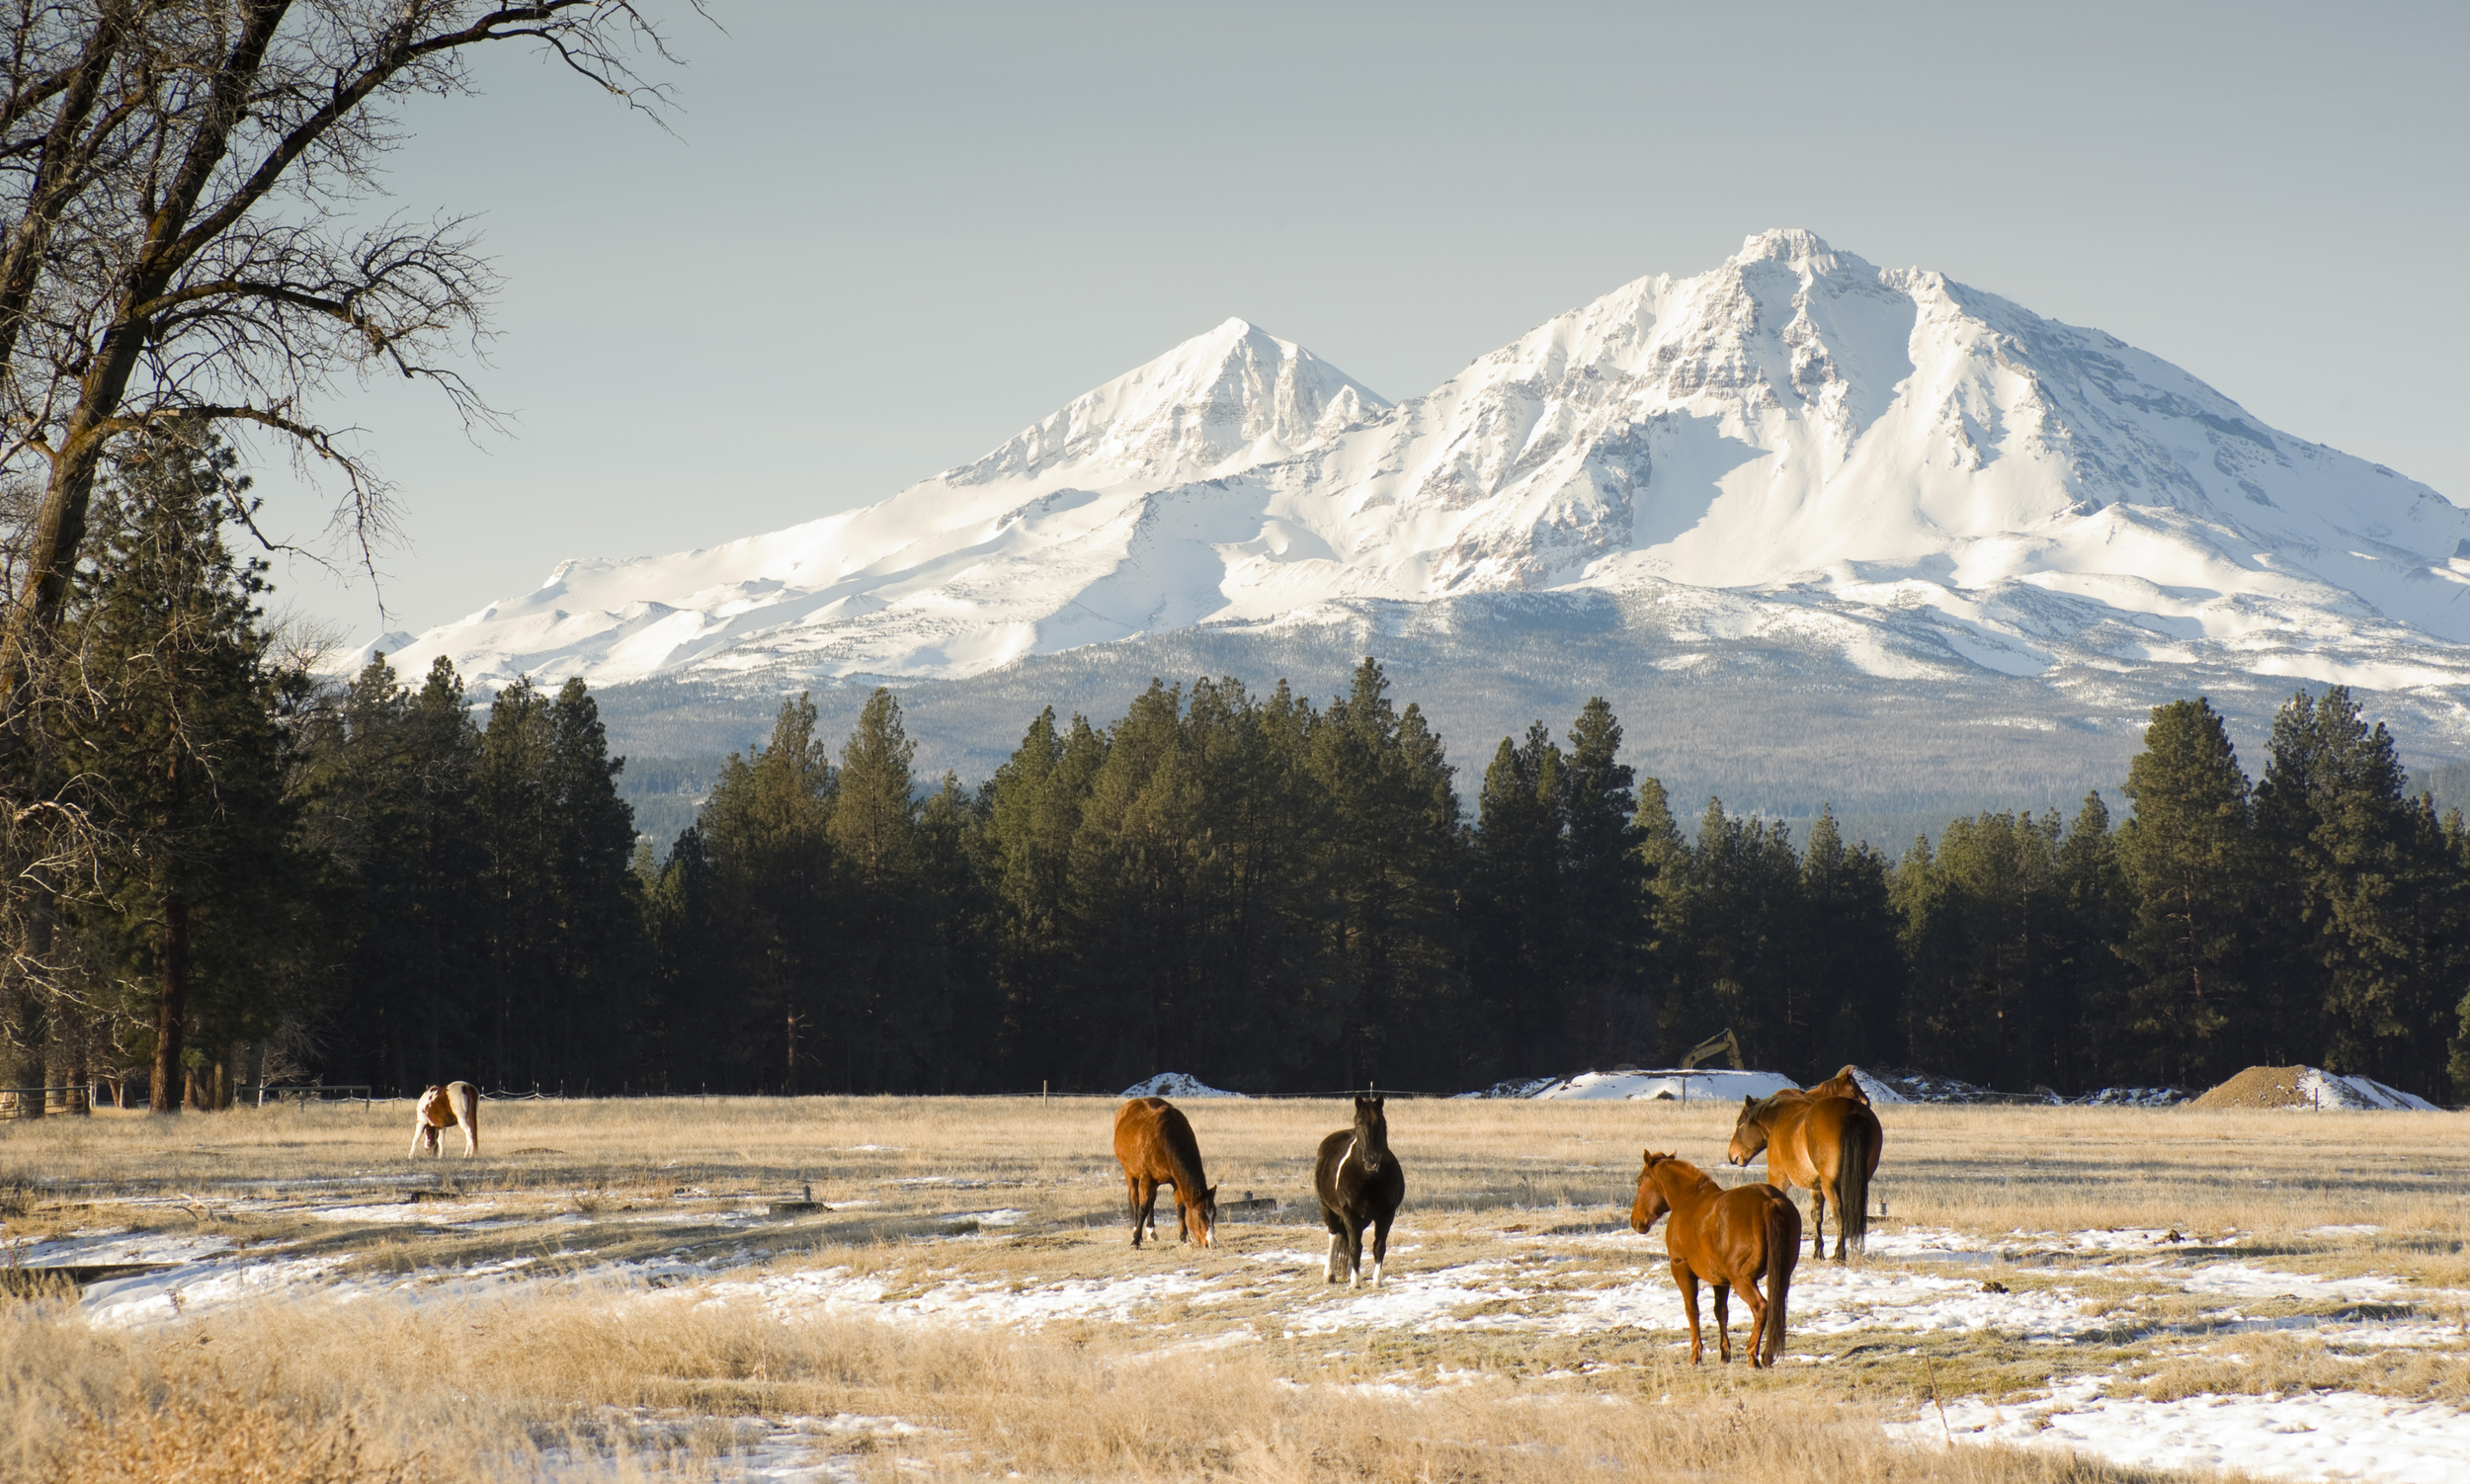 Middle and North Sister are dormant volcanoes